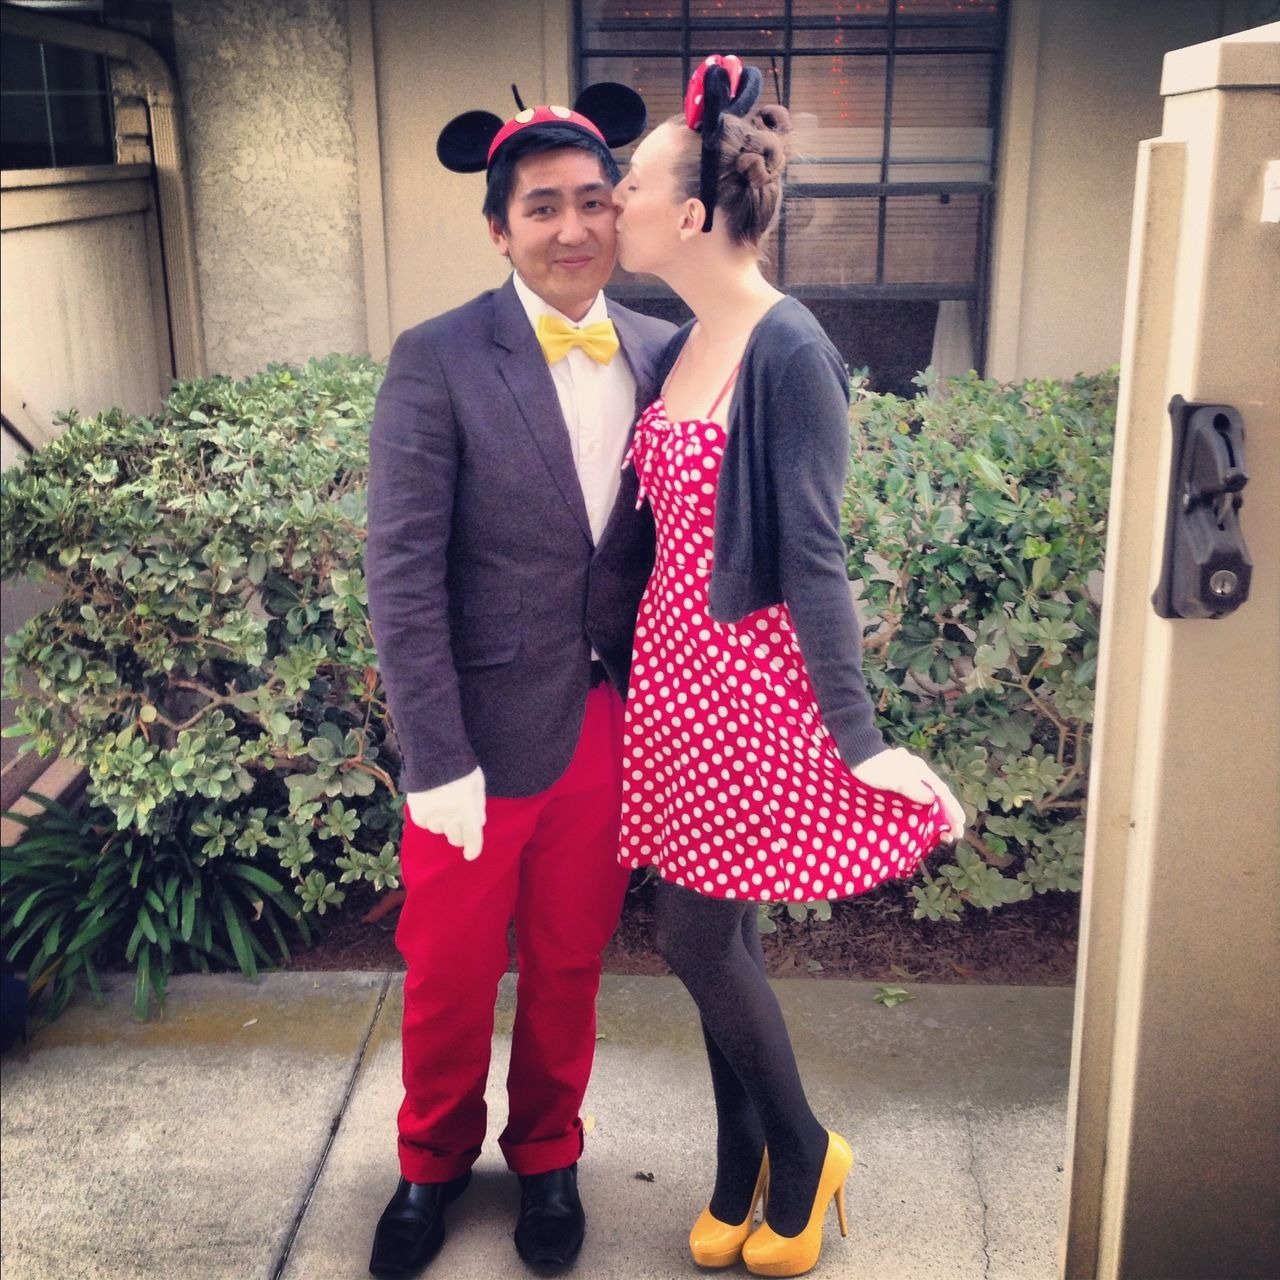 Disney Costume Ideas I Want To Be Minnie Mouse For Mickeys Not So Scary Halloween